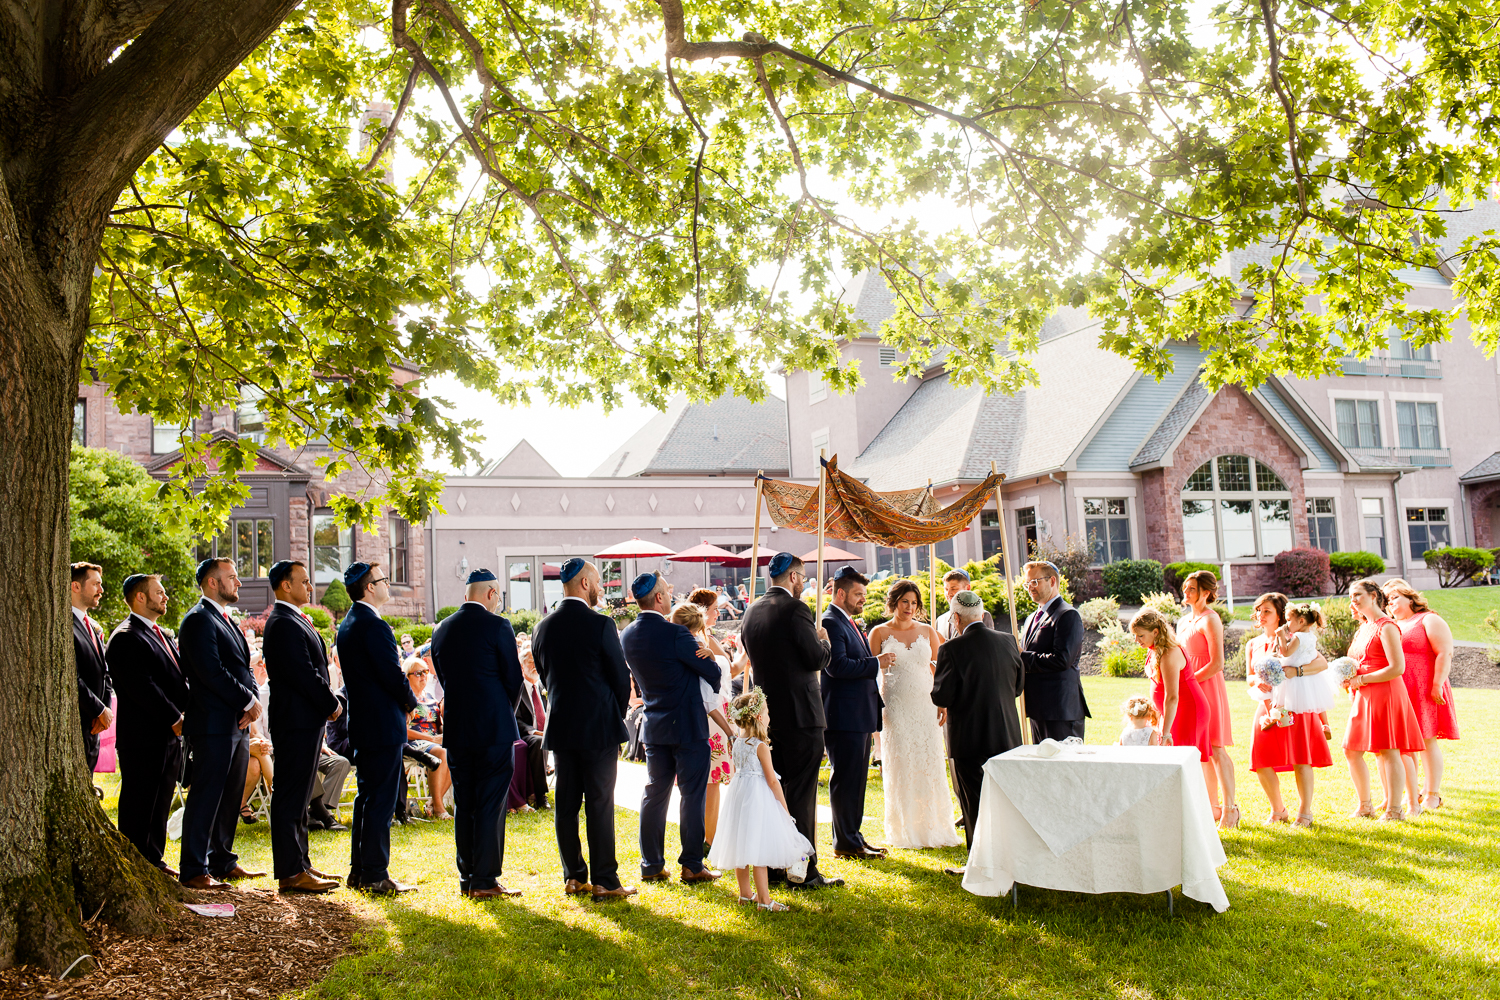 Bride and groom get married surrounded by family, friends, and bridal party.